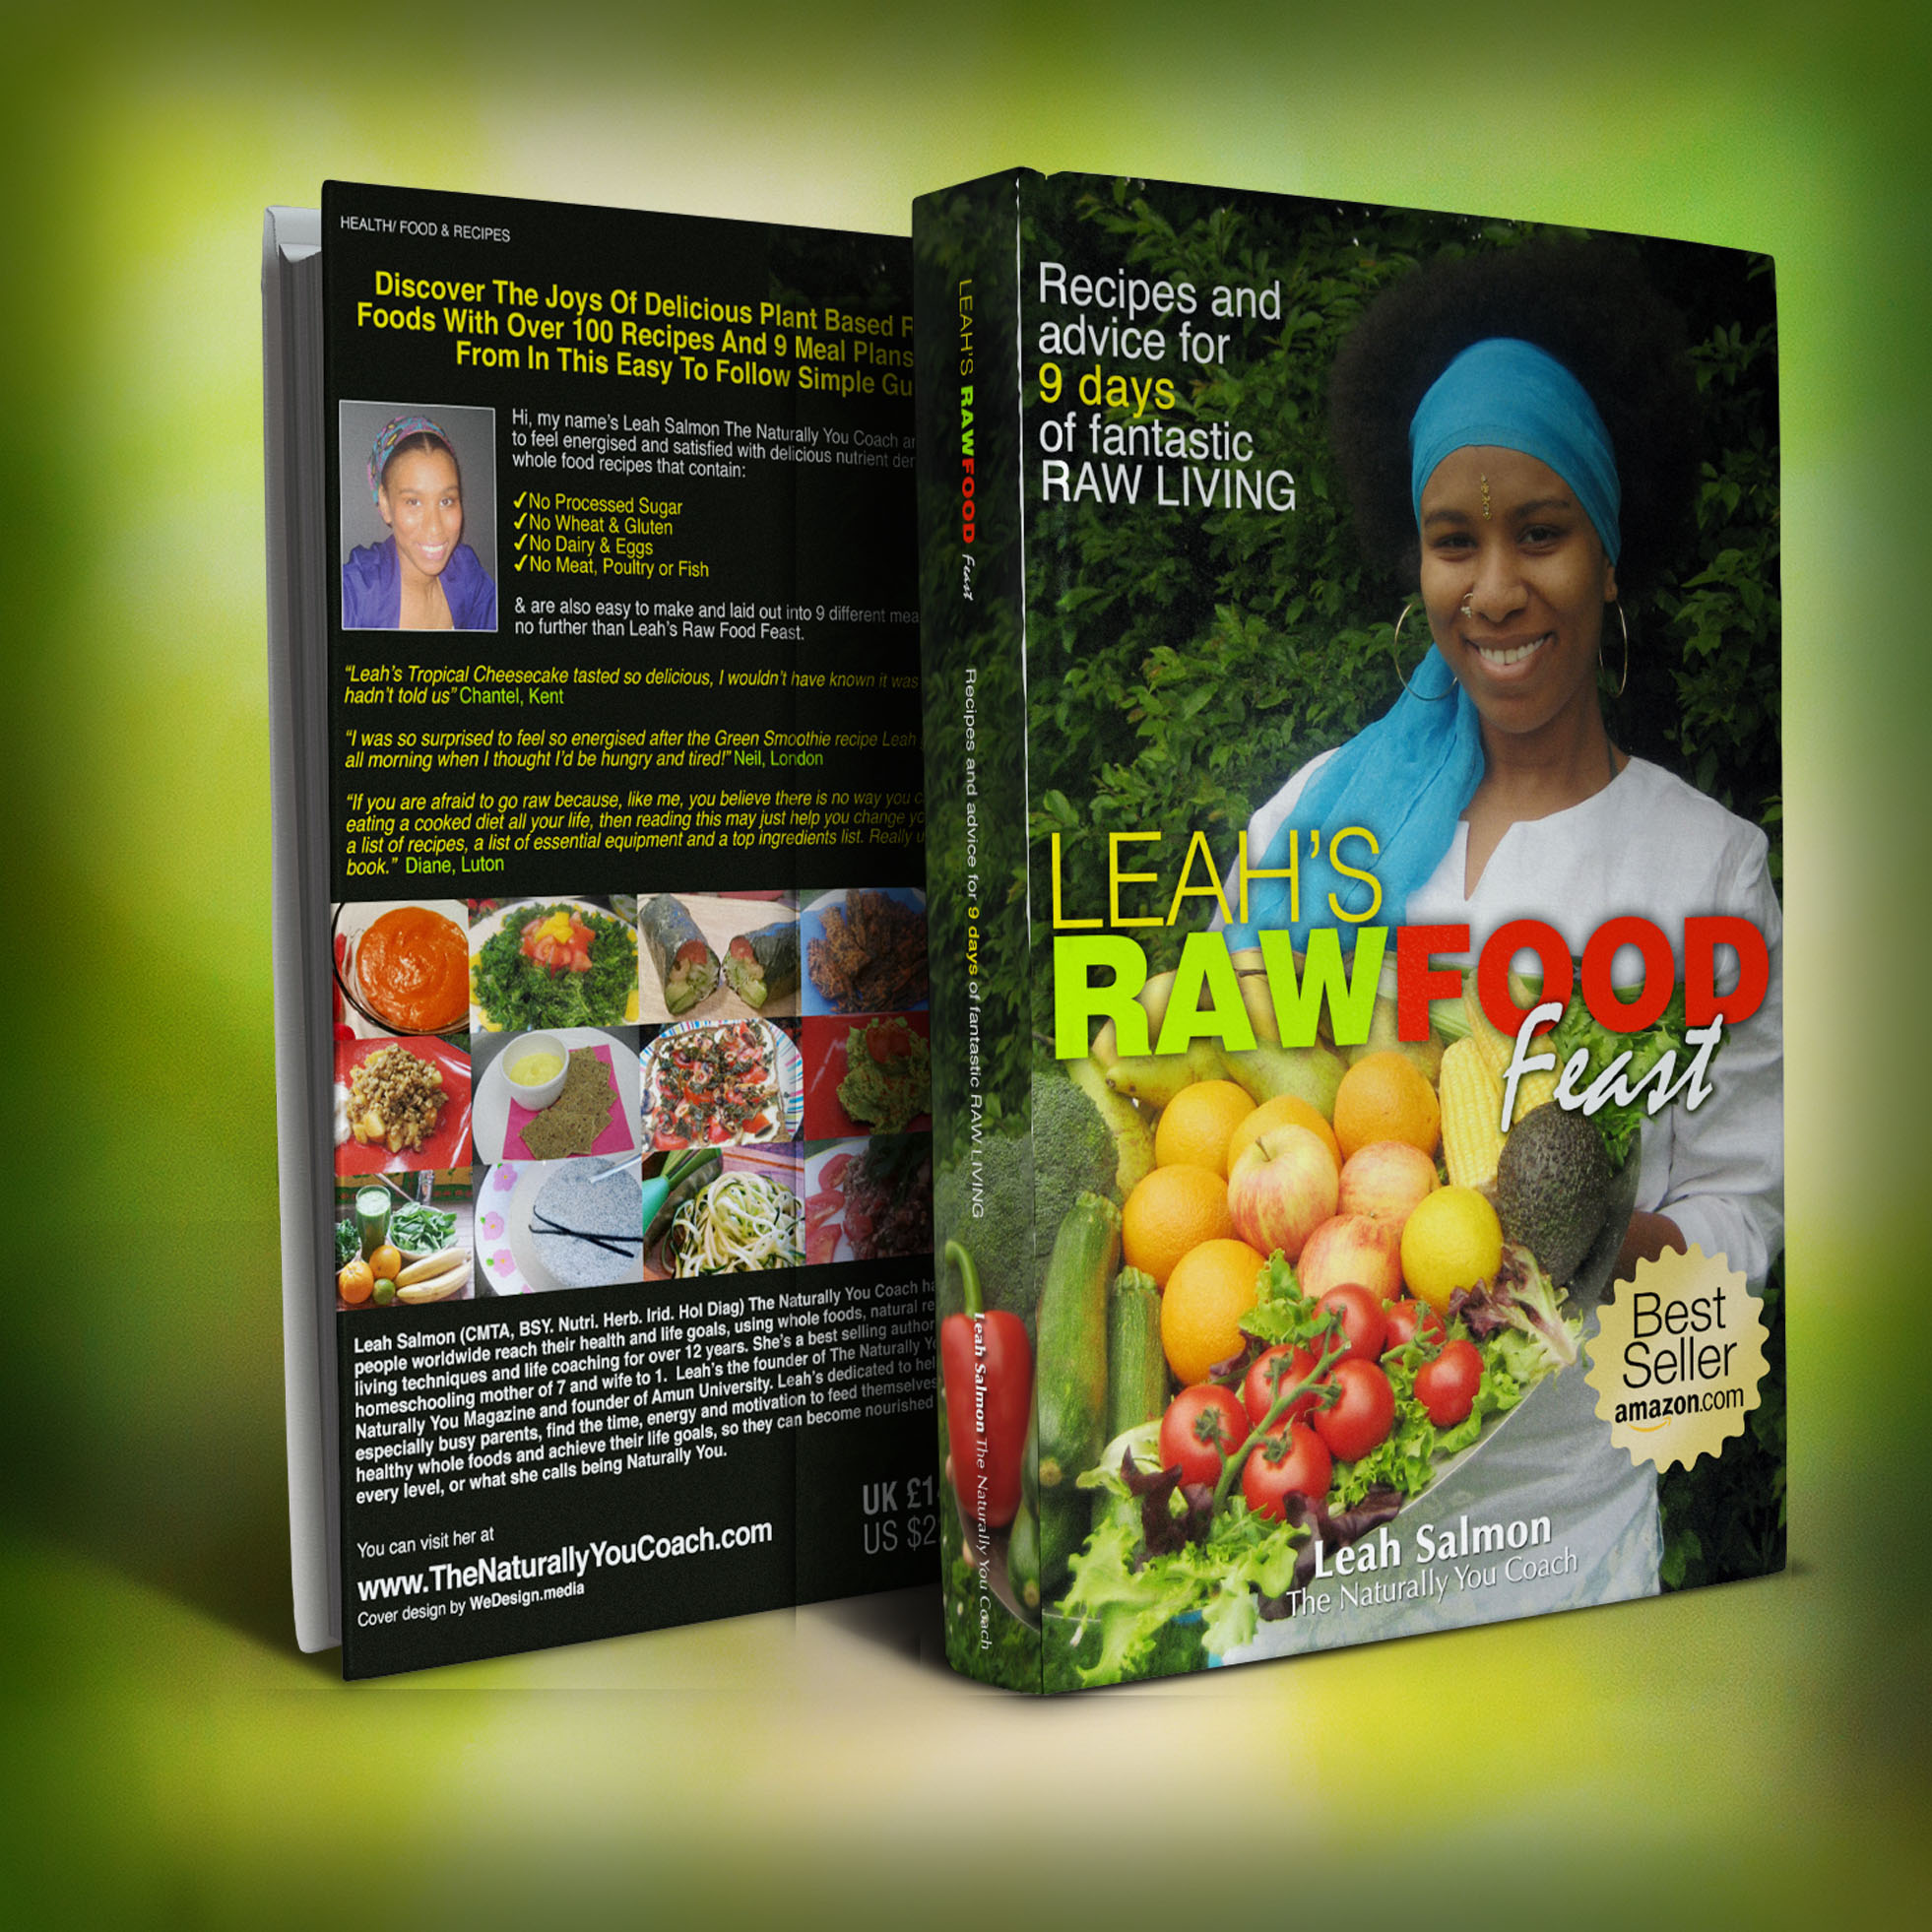 Leahs raw food feast raw food recipe book the naturally you coach leahs raw food feast raw food recipe book forumfinder